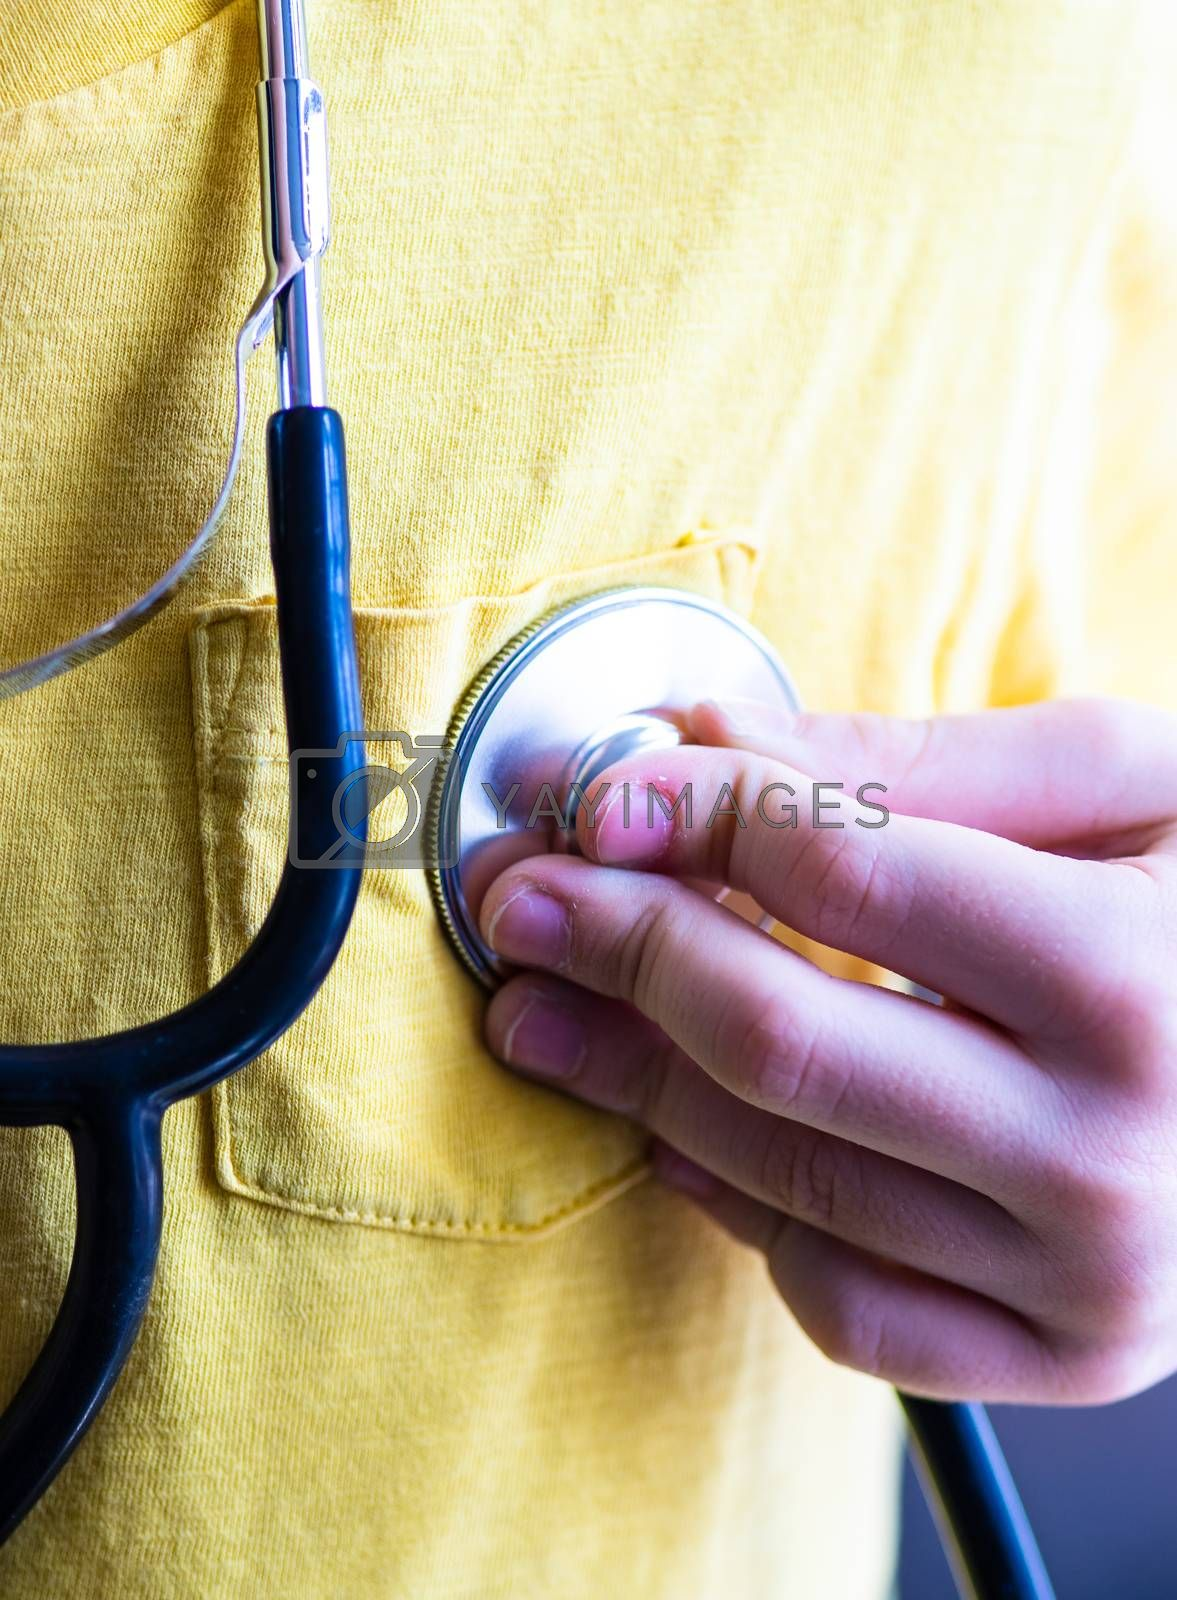 Coronavirus or Covid-19 epidemic healthcare concept with stethoscope on stone background with copy space